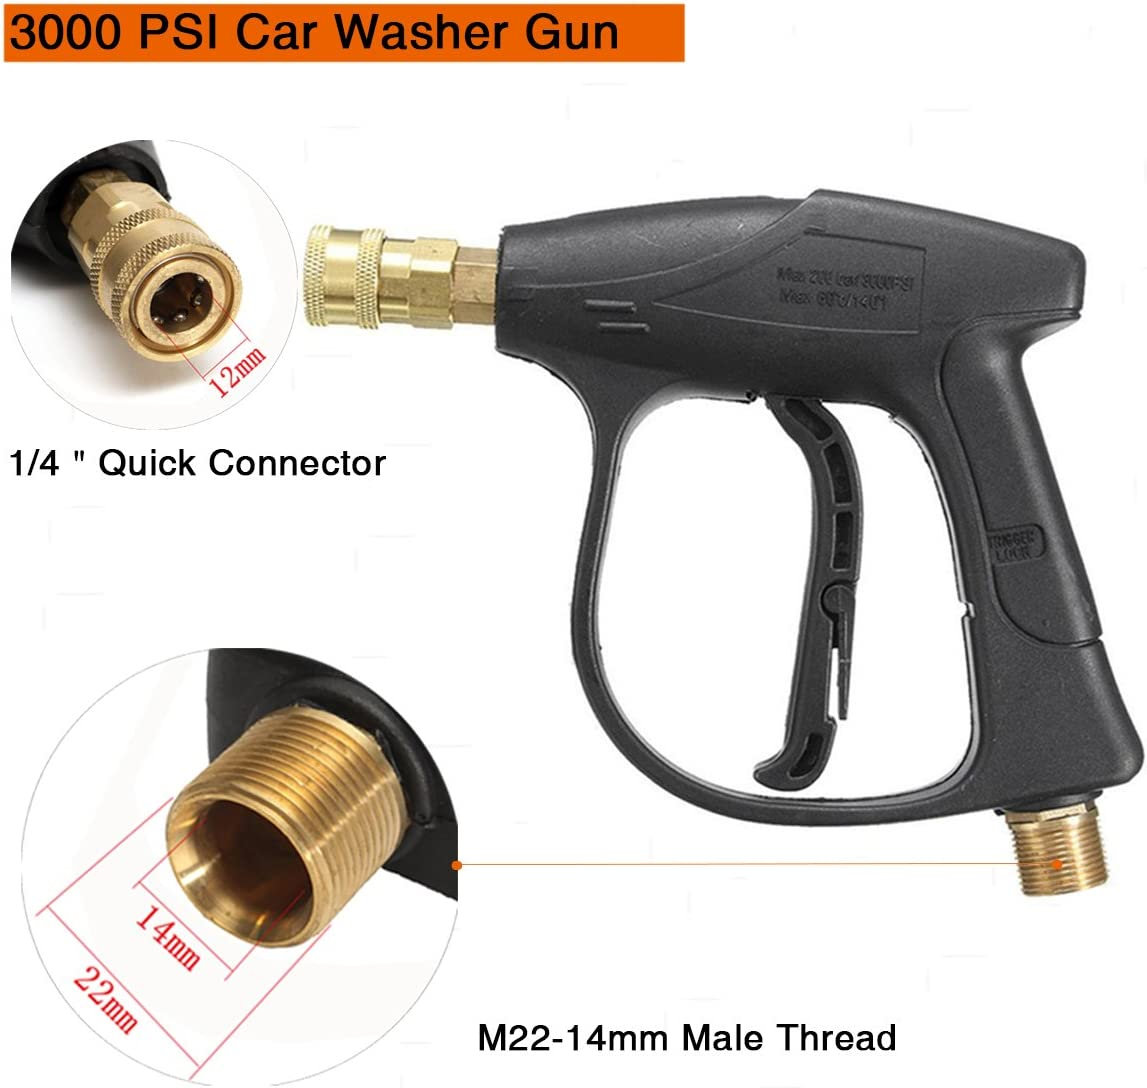 MATCC High Pressure Washer Gun 3000 PSI Car Washer Gun With 5 Nozzles for Car Pressure Power Washers: Automotive